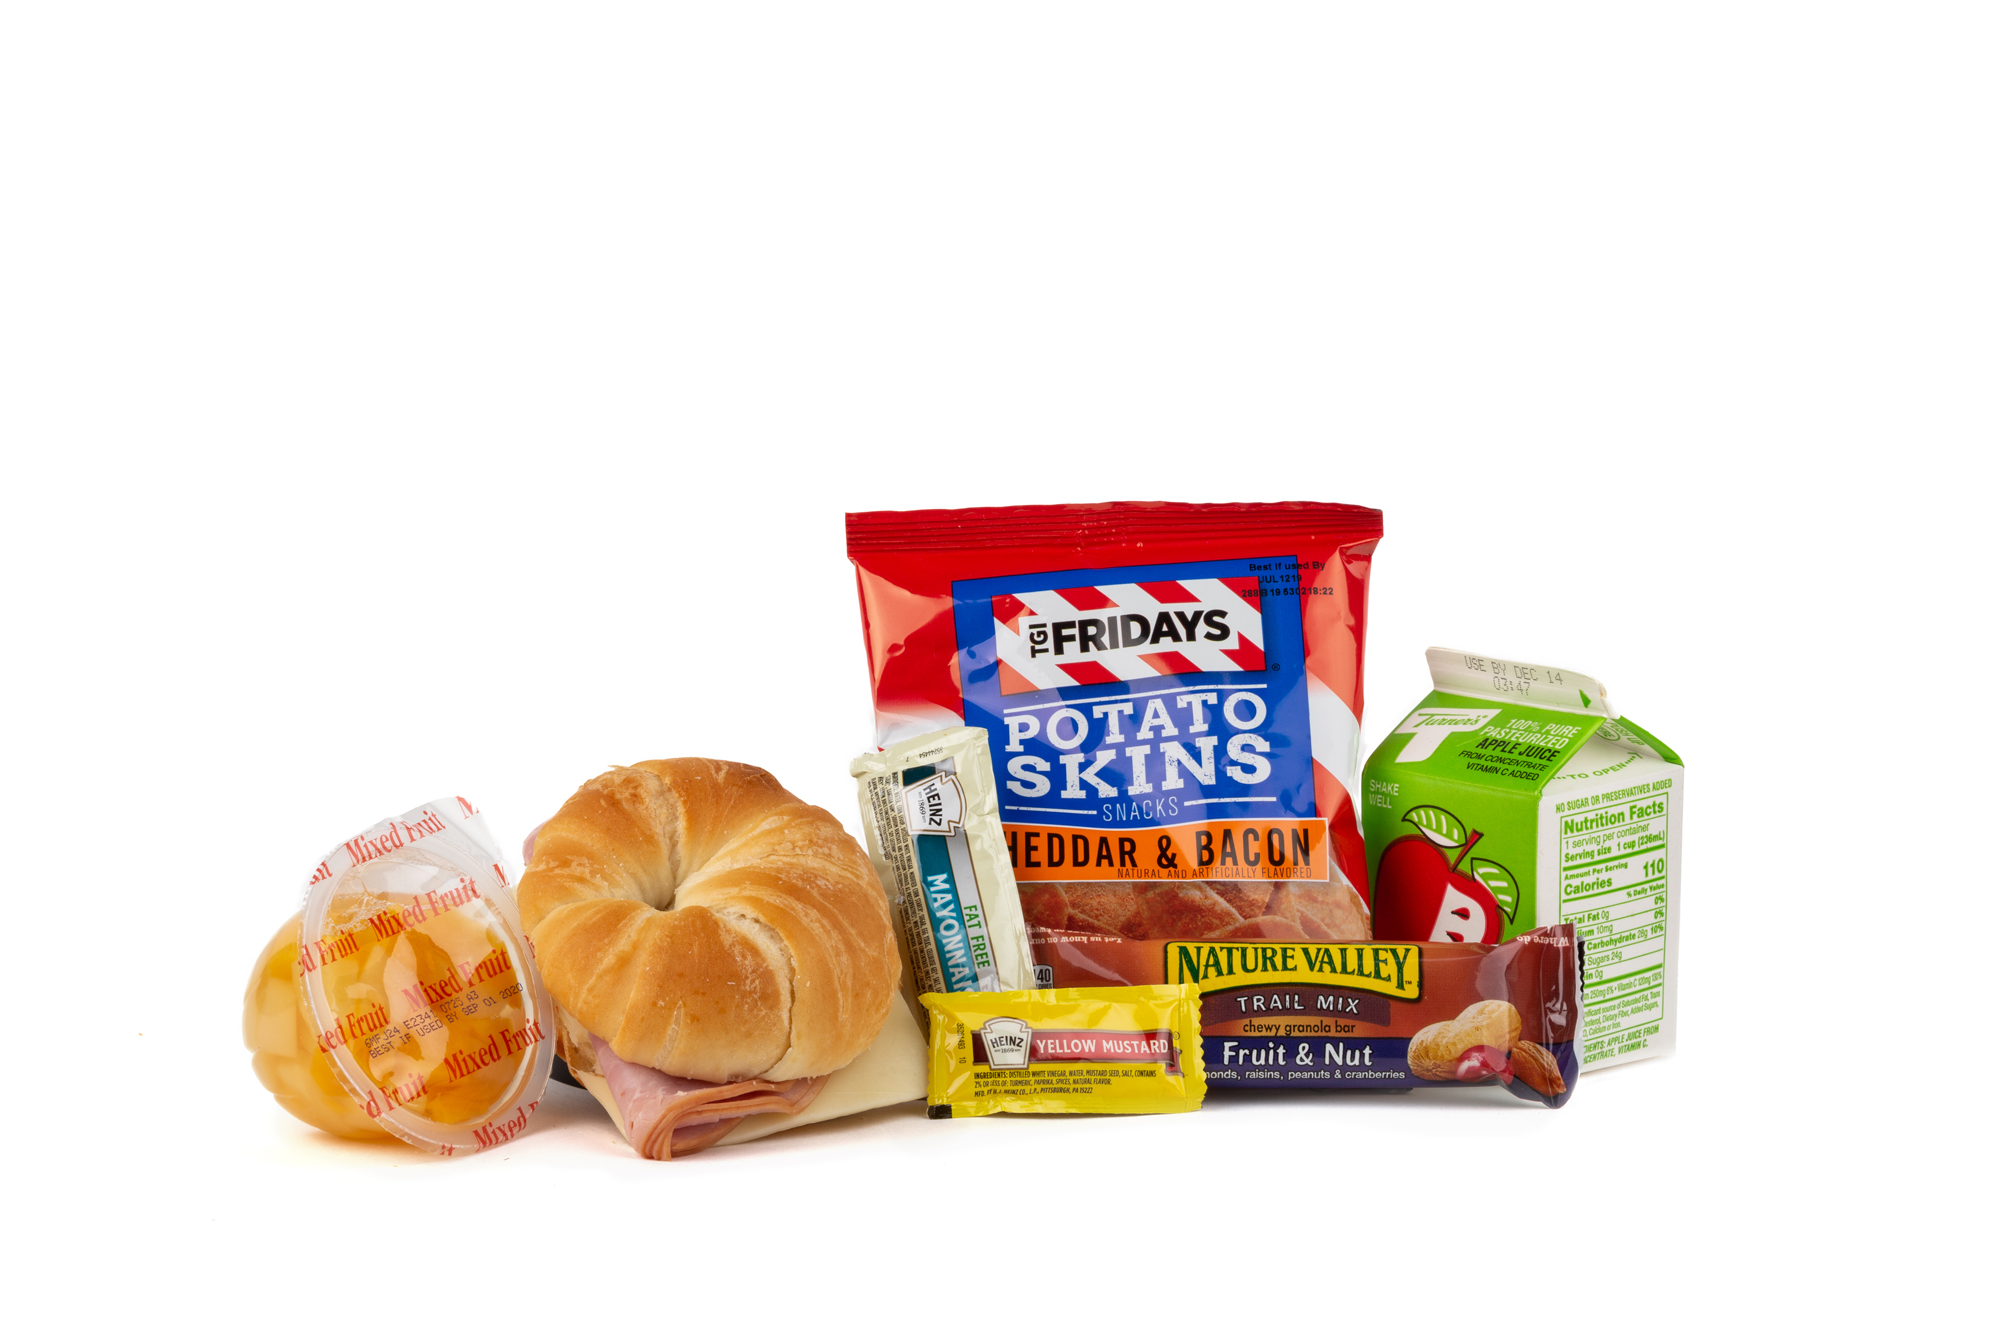 MK06 - Fresh Ham/Swiss/Croissant  Smoked Ham and Swiss on Croissant TGIF Potato Chips Granola Bar Fruit Nut Mustard Packet Mayonnaise Packet Fat Free Mixed Fruit Cup Apple Juice